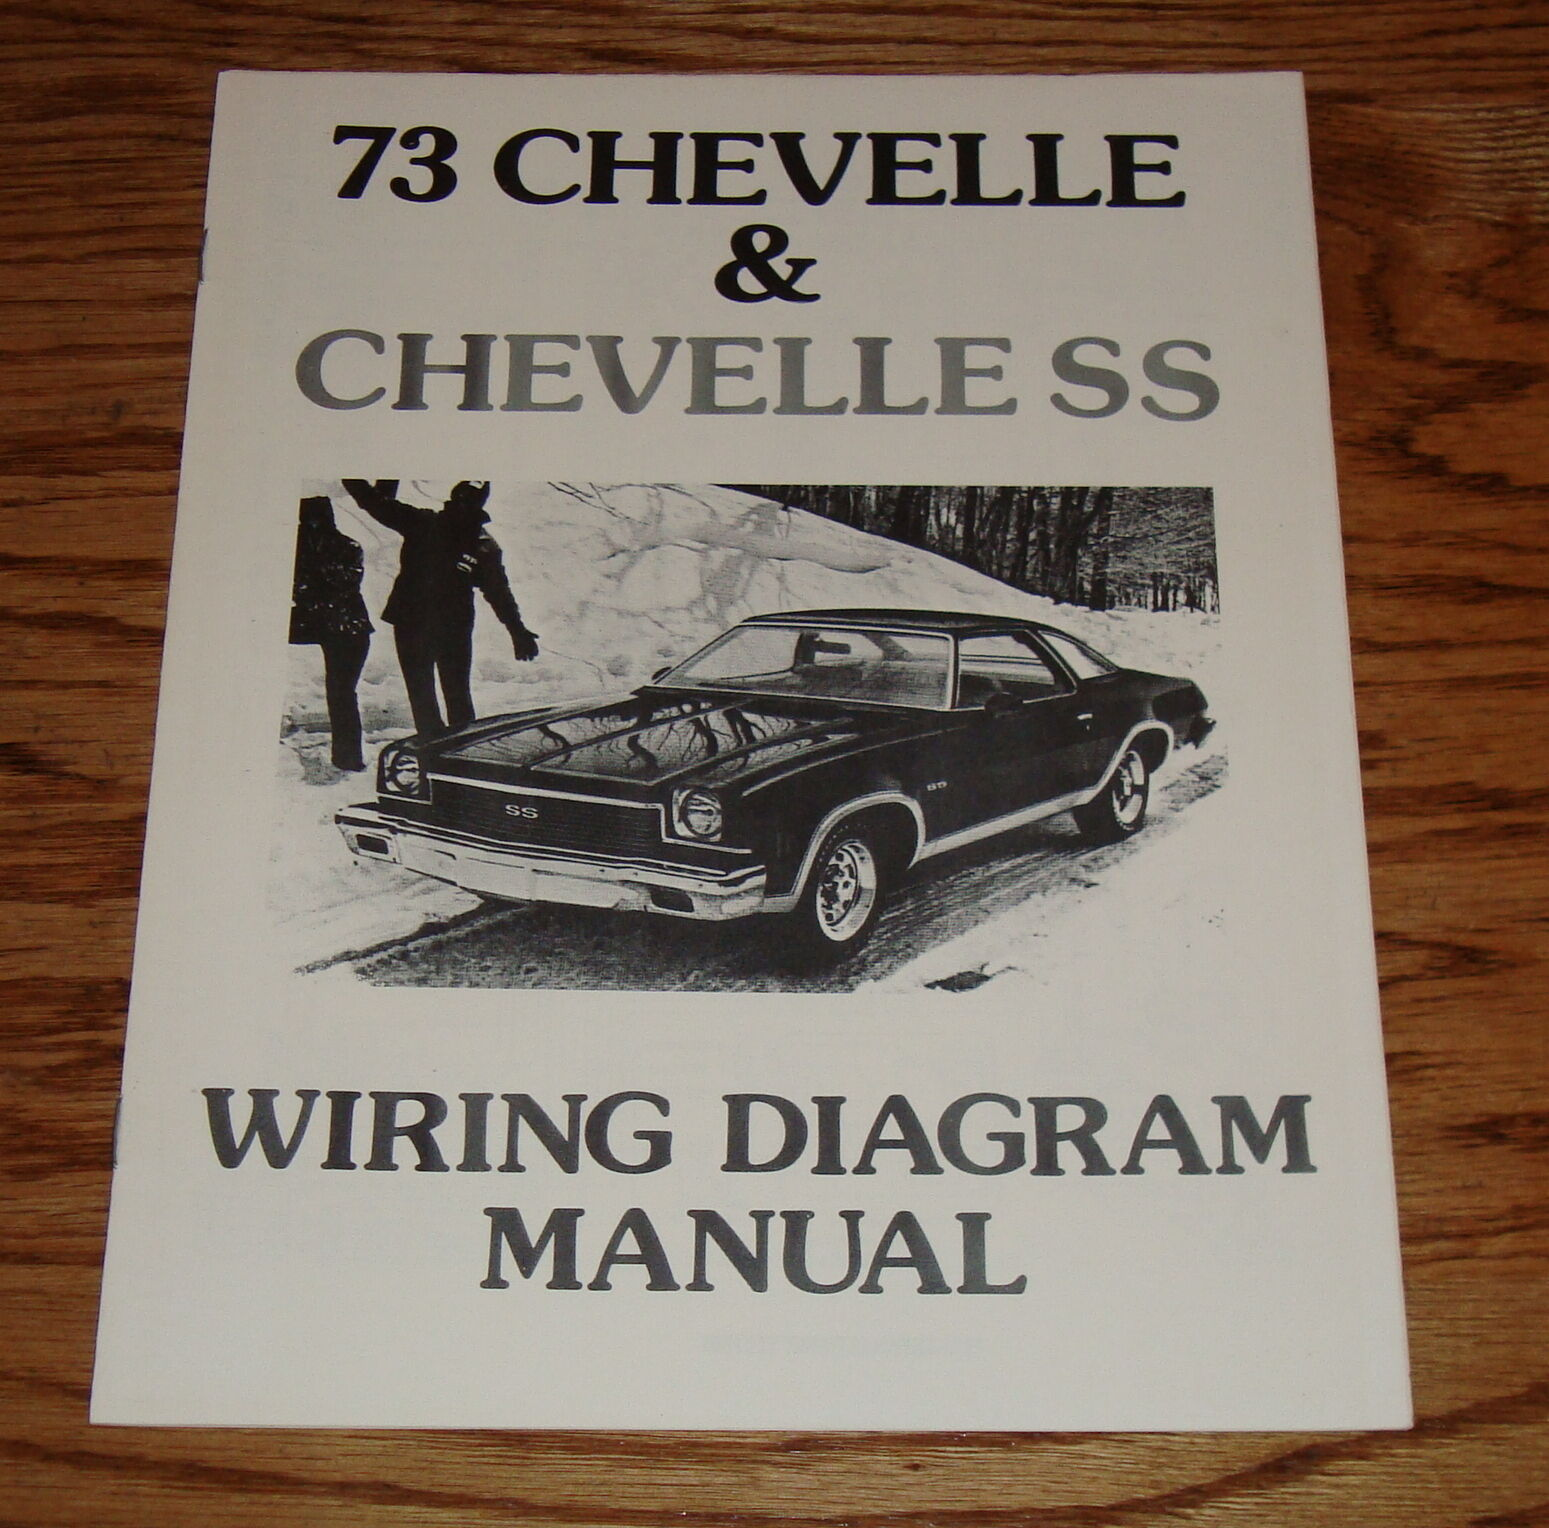 1973 Chevrolet Chevelle Ss Wiring Diagram Manual 73 Chevy 900 1979 Monte Carlo 1 Of 1only 2 Available